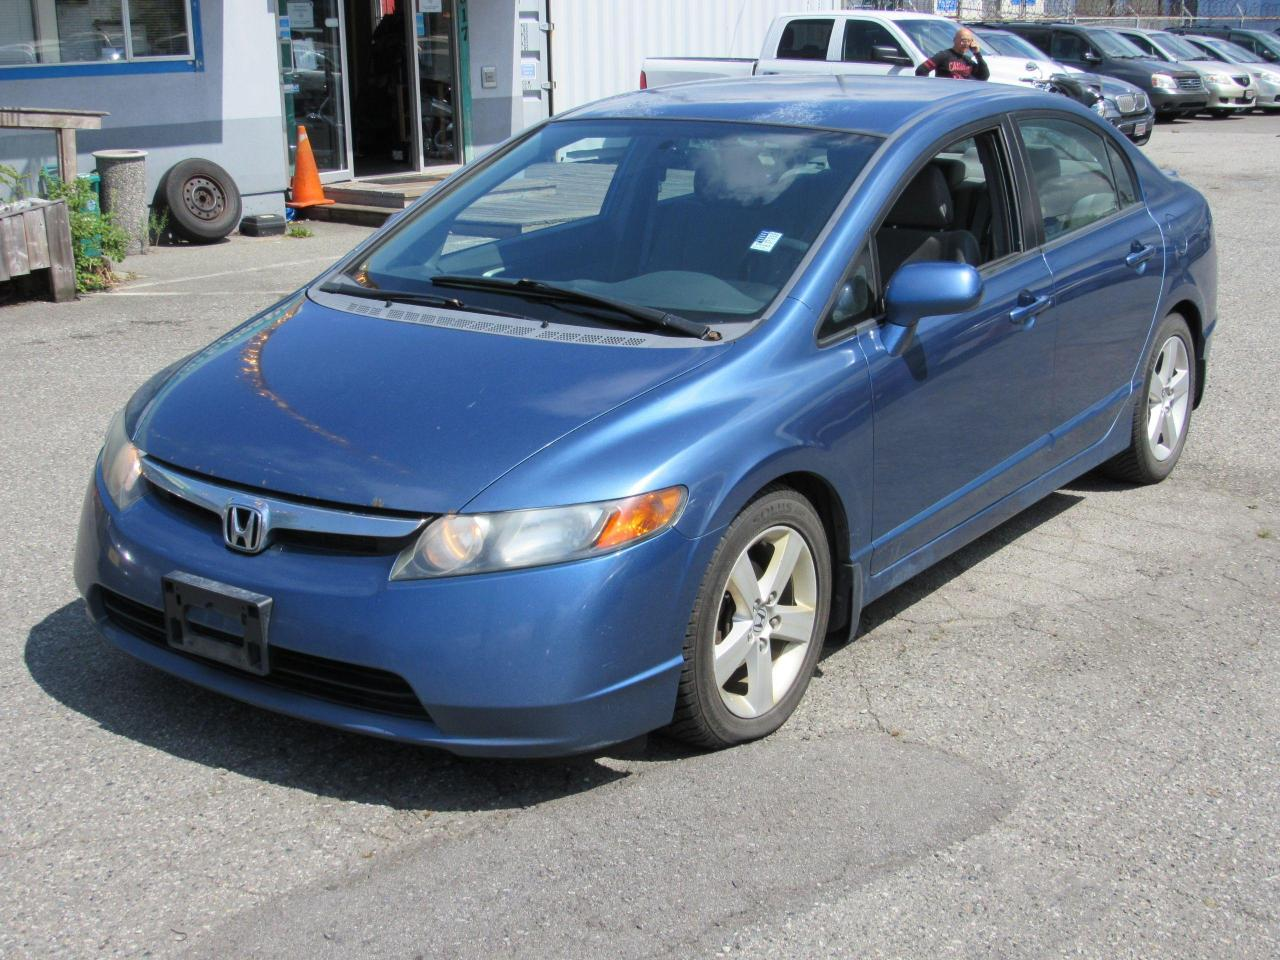 used 2008 honda civic lx for sale in vancouver, british columbia carpages.ca